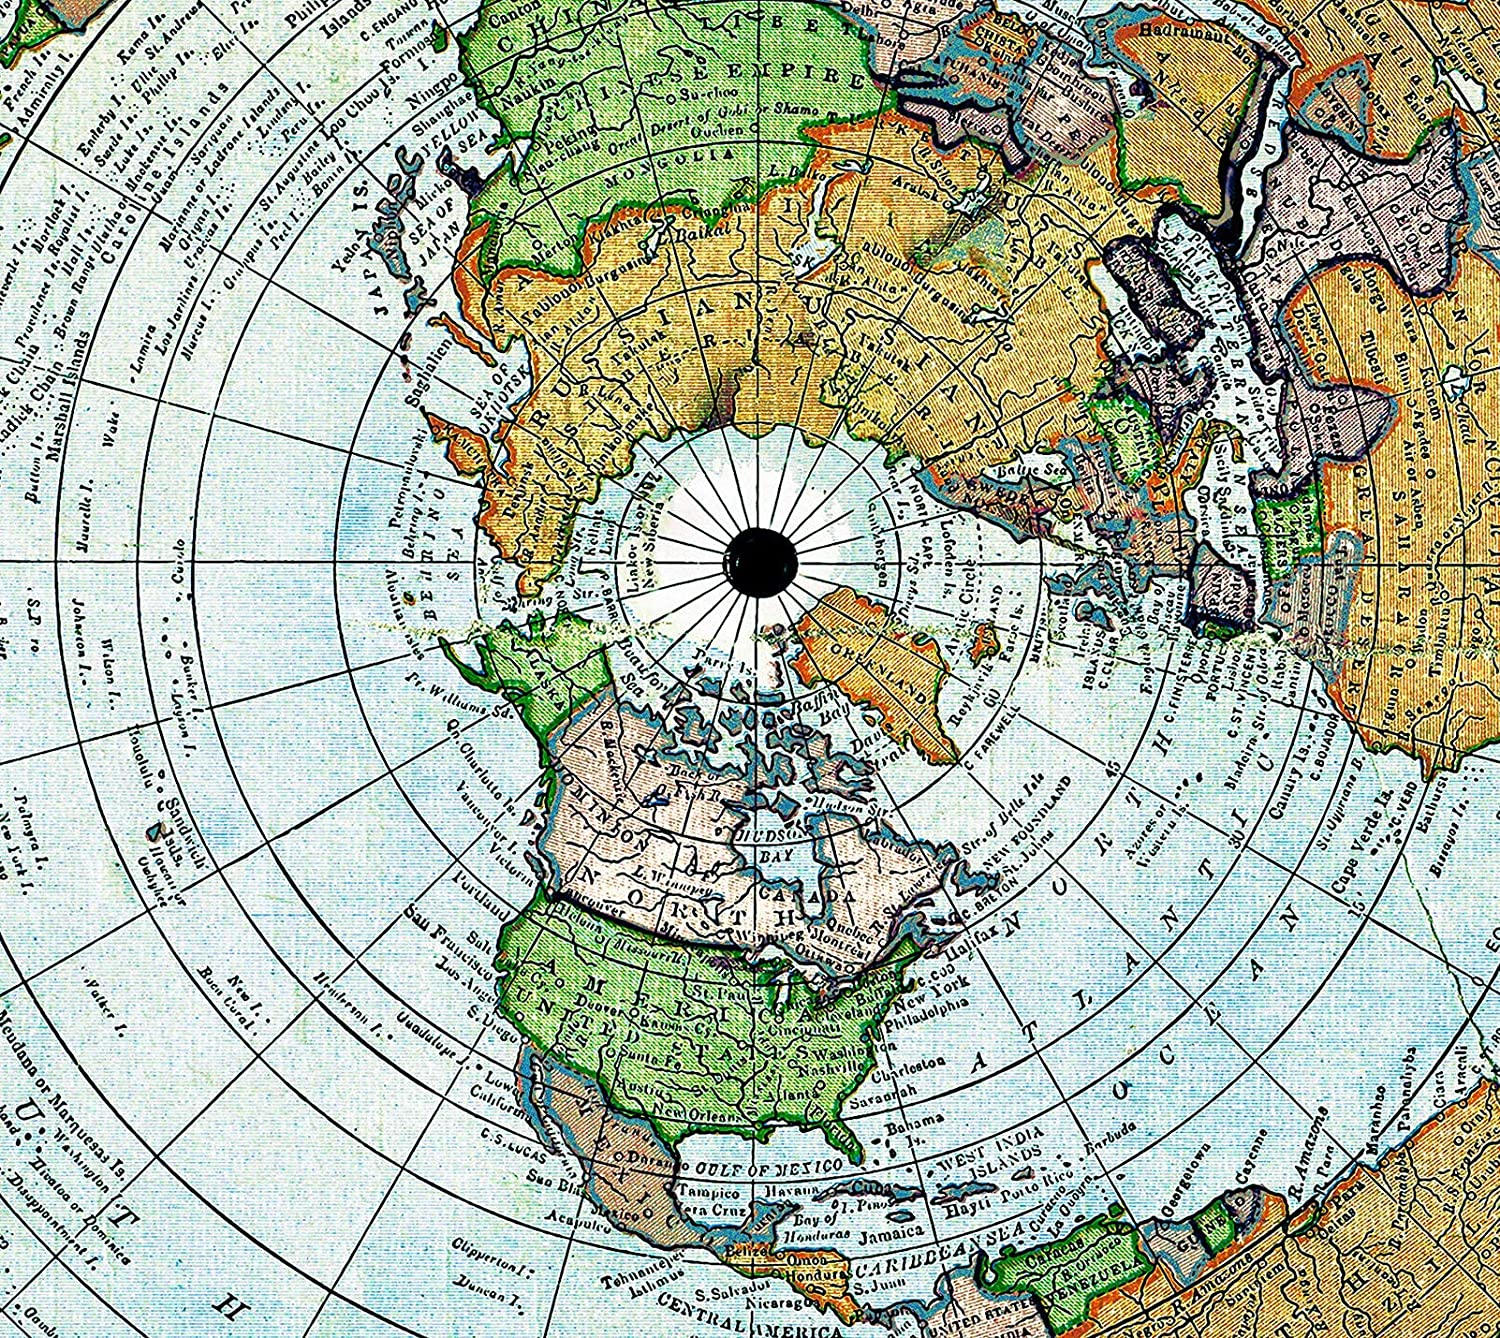 Map Gleason 1892 World Time Calculator Flat Earth Large Wall Art Poster Print Thick Paper 24X24 inch Carte Monde Mur Impression daffiches